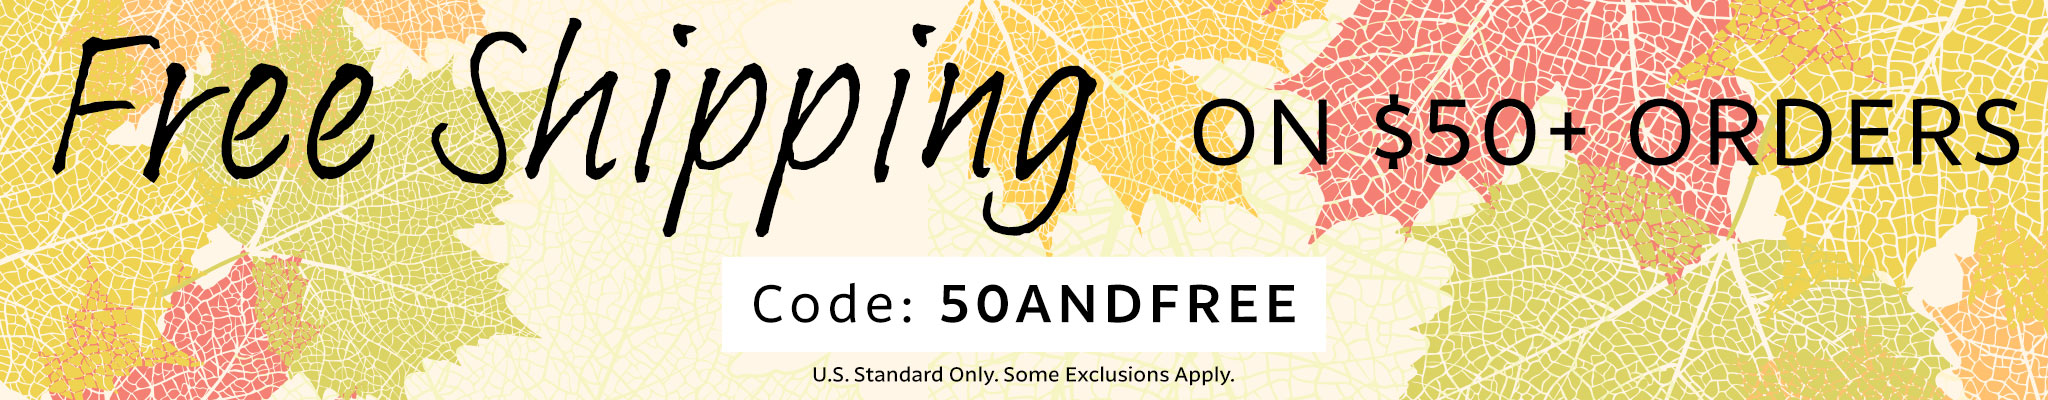 Free Shipping on $50 Orders | Use Code 50ANDFREE at checkout